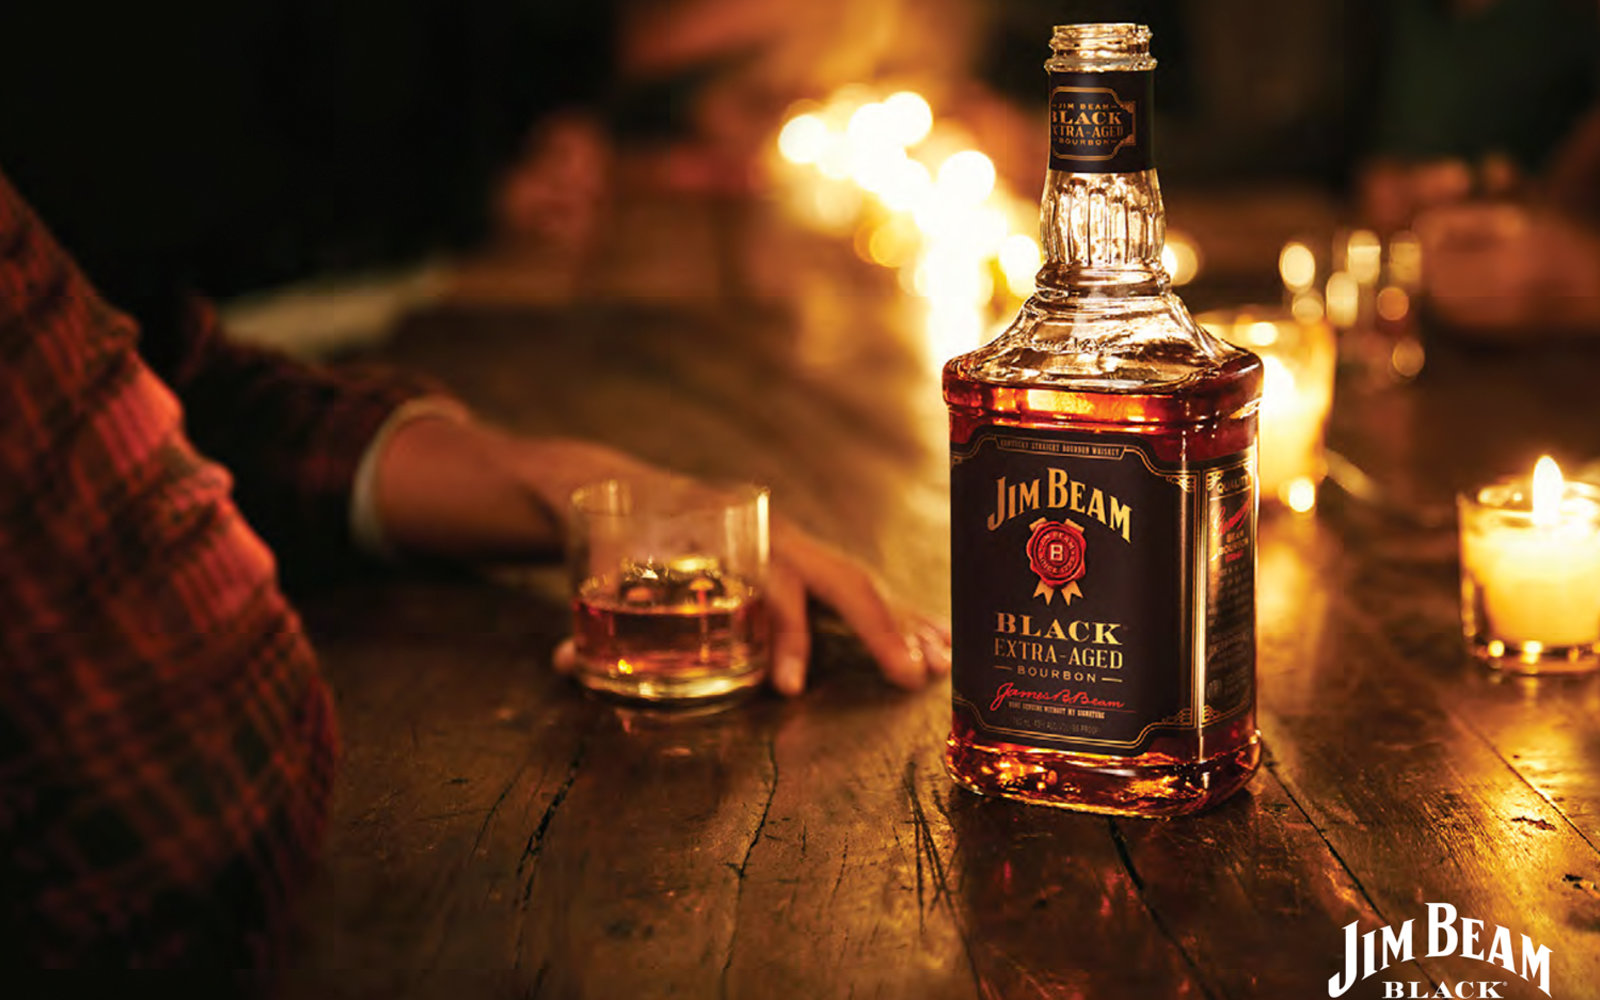 Jim Beam Black Bourbon